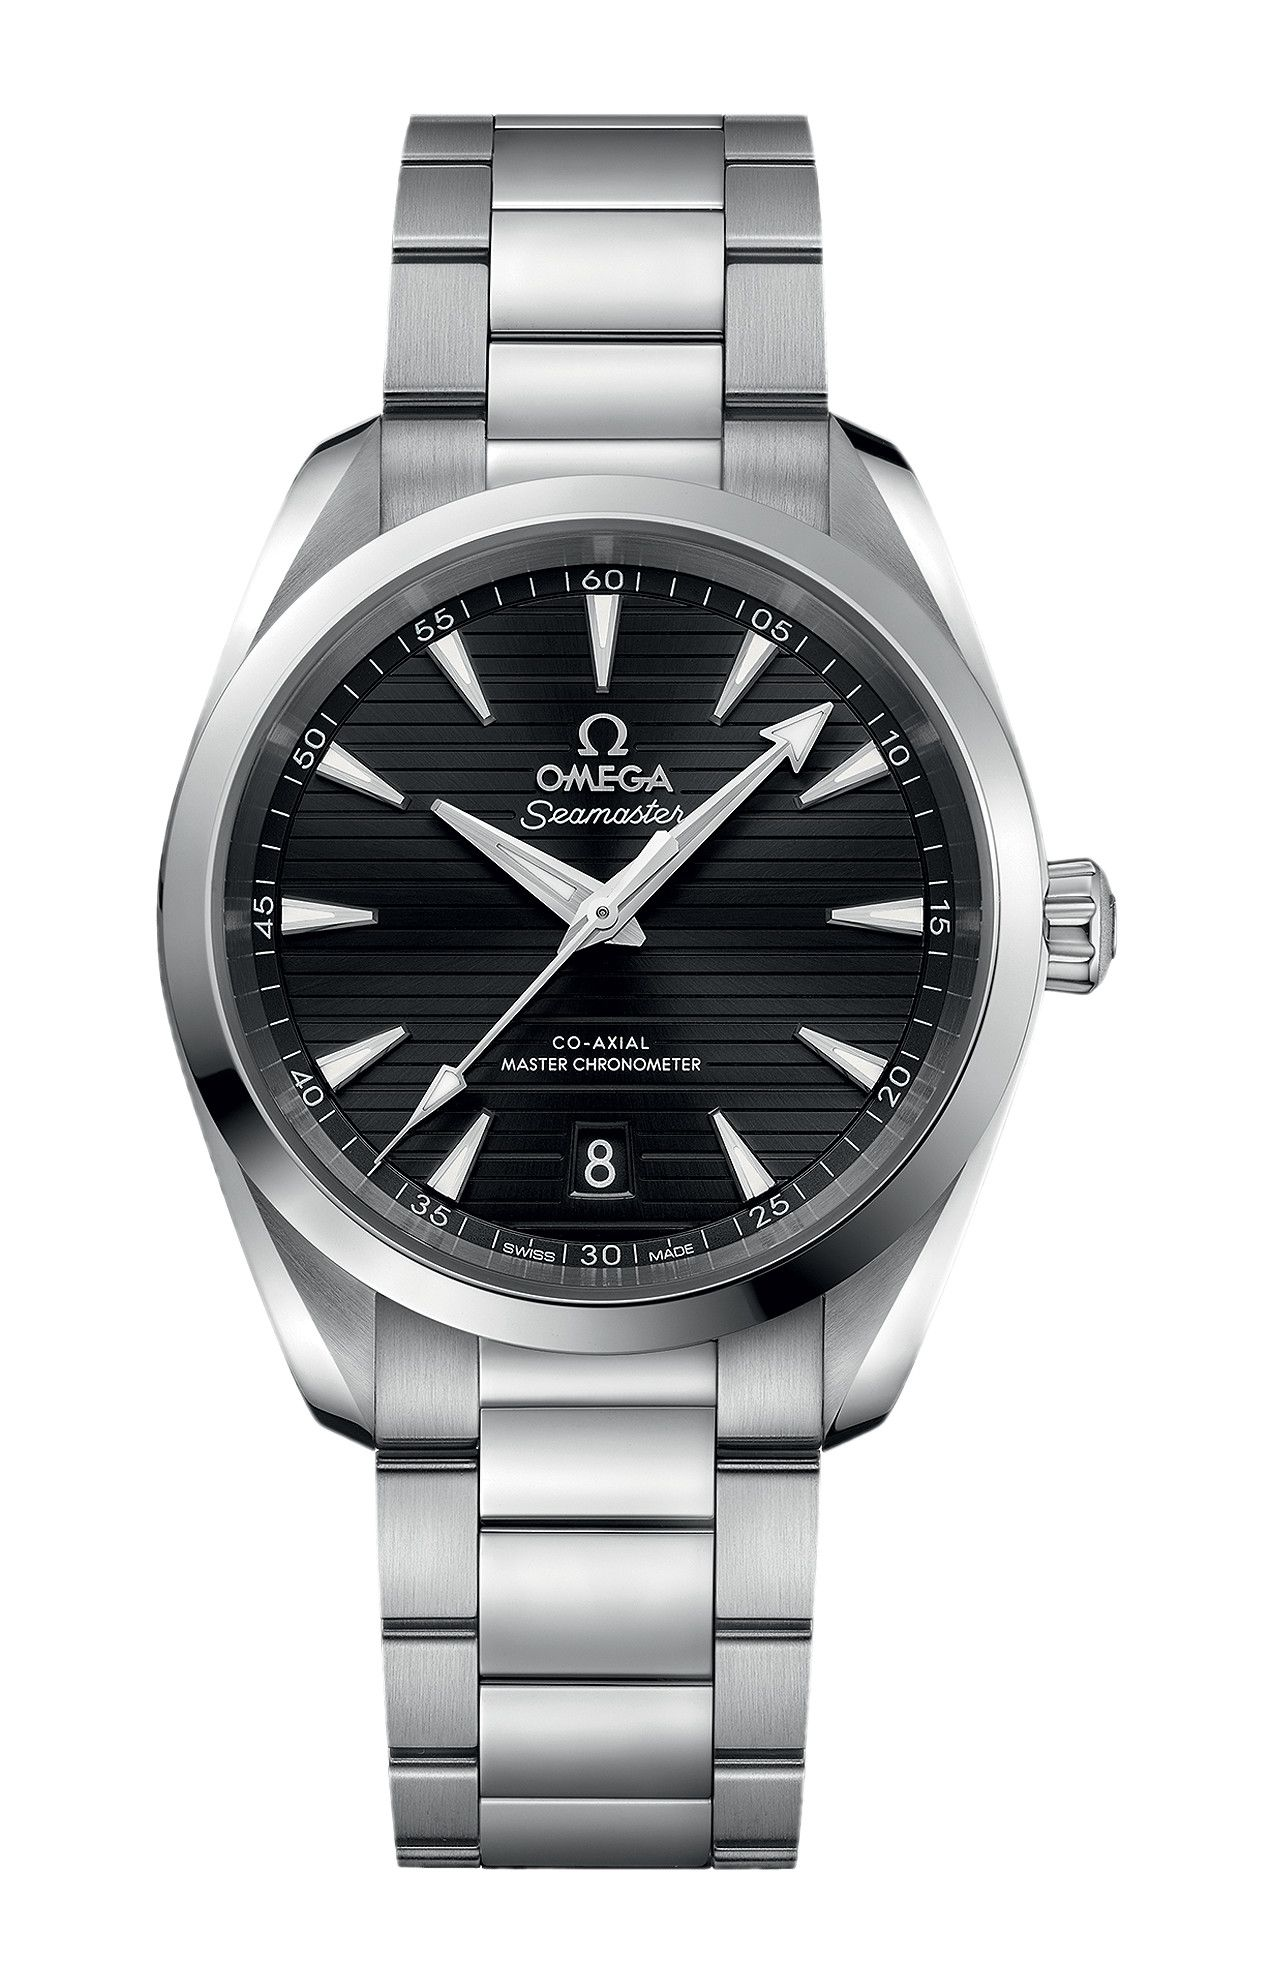 SEAMASTER AQUA TERRA 150M OMEGA CO-AXIAL MASTER CHRONOMETER 38 MM - 220.10.38.20.01.001